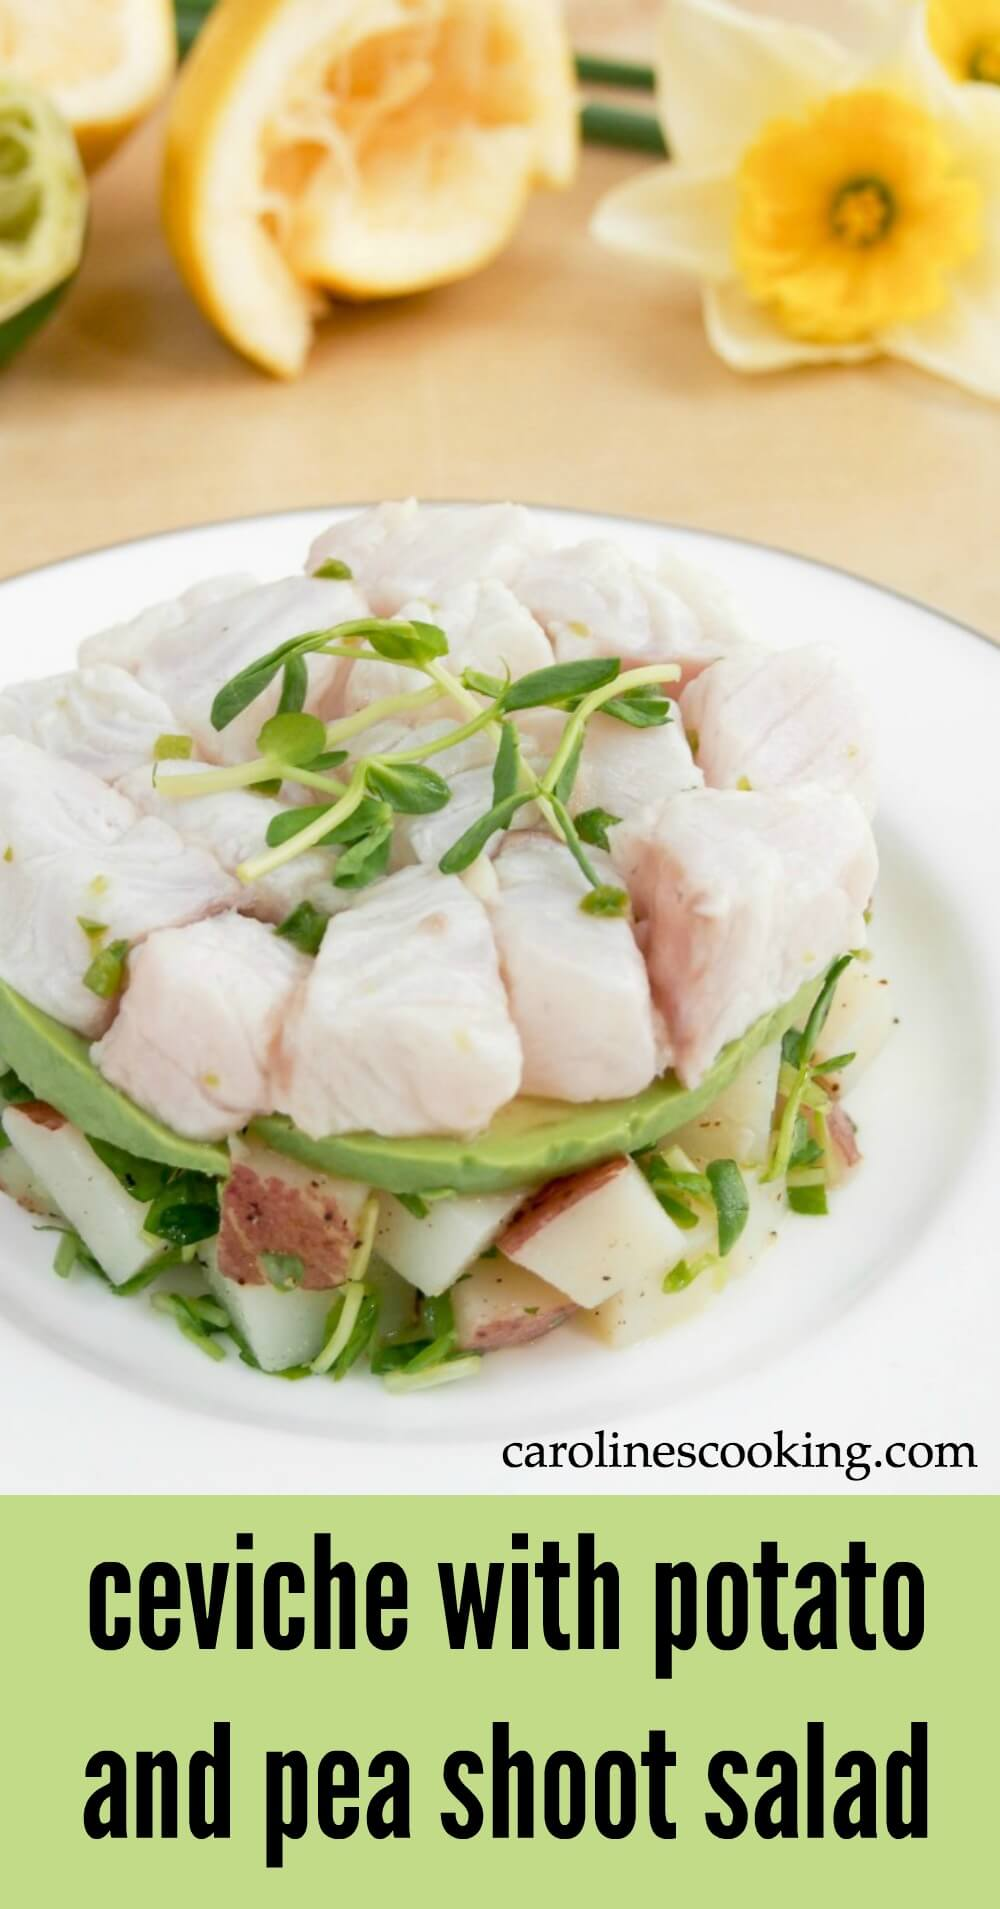 This ceviche with potato and pea shoot salad is fresh, healthy and delicious. It's easy to make and makes a great appetizer or lunch.